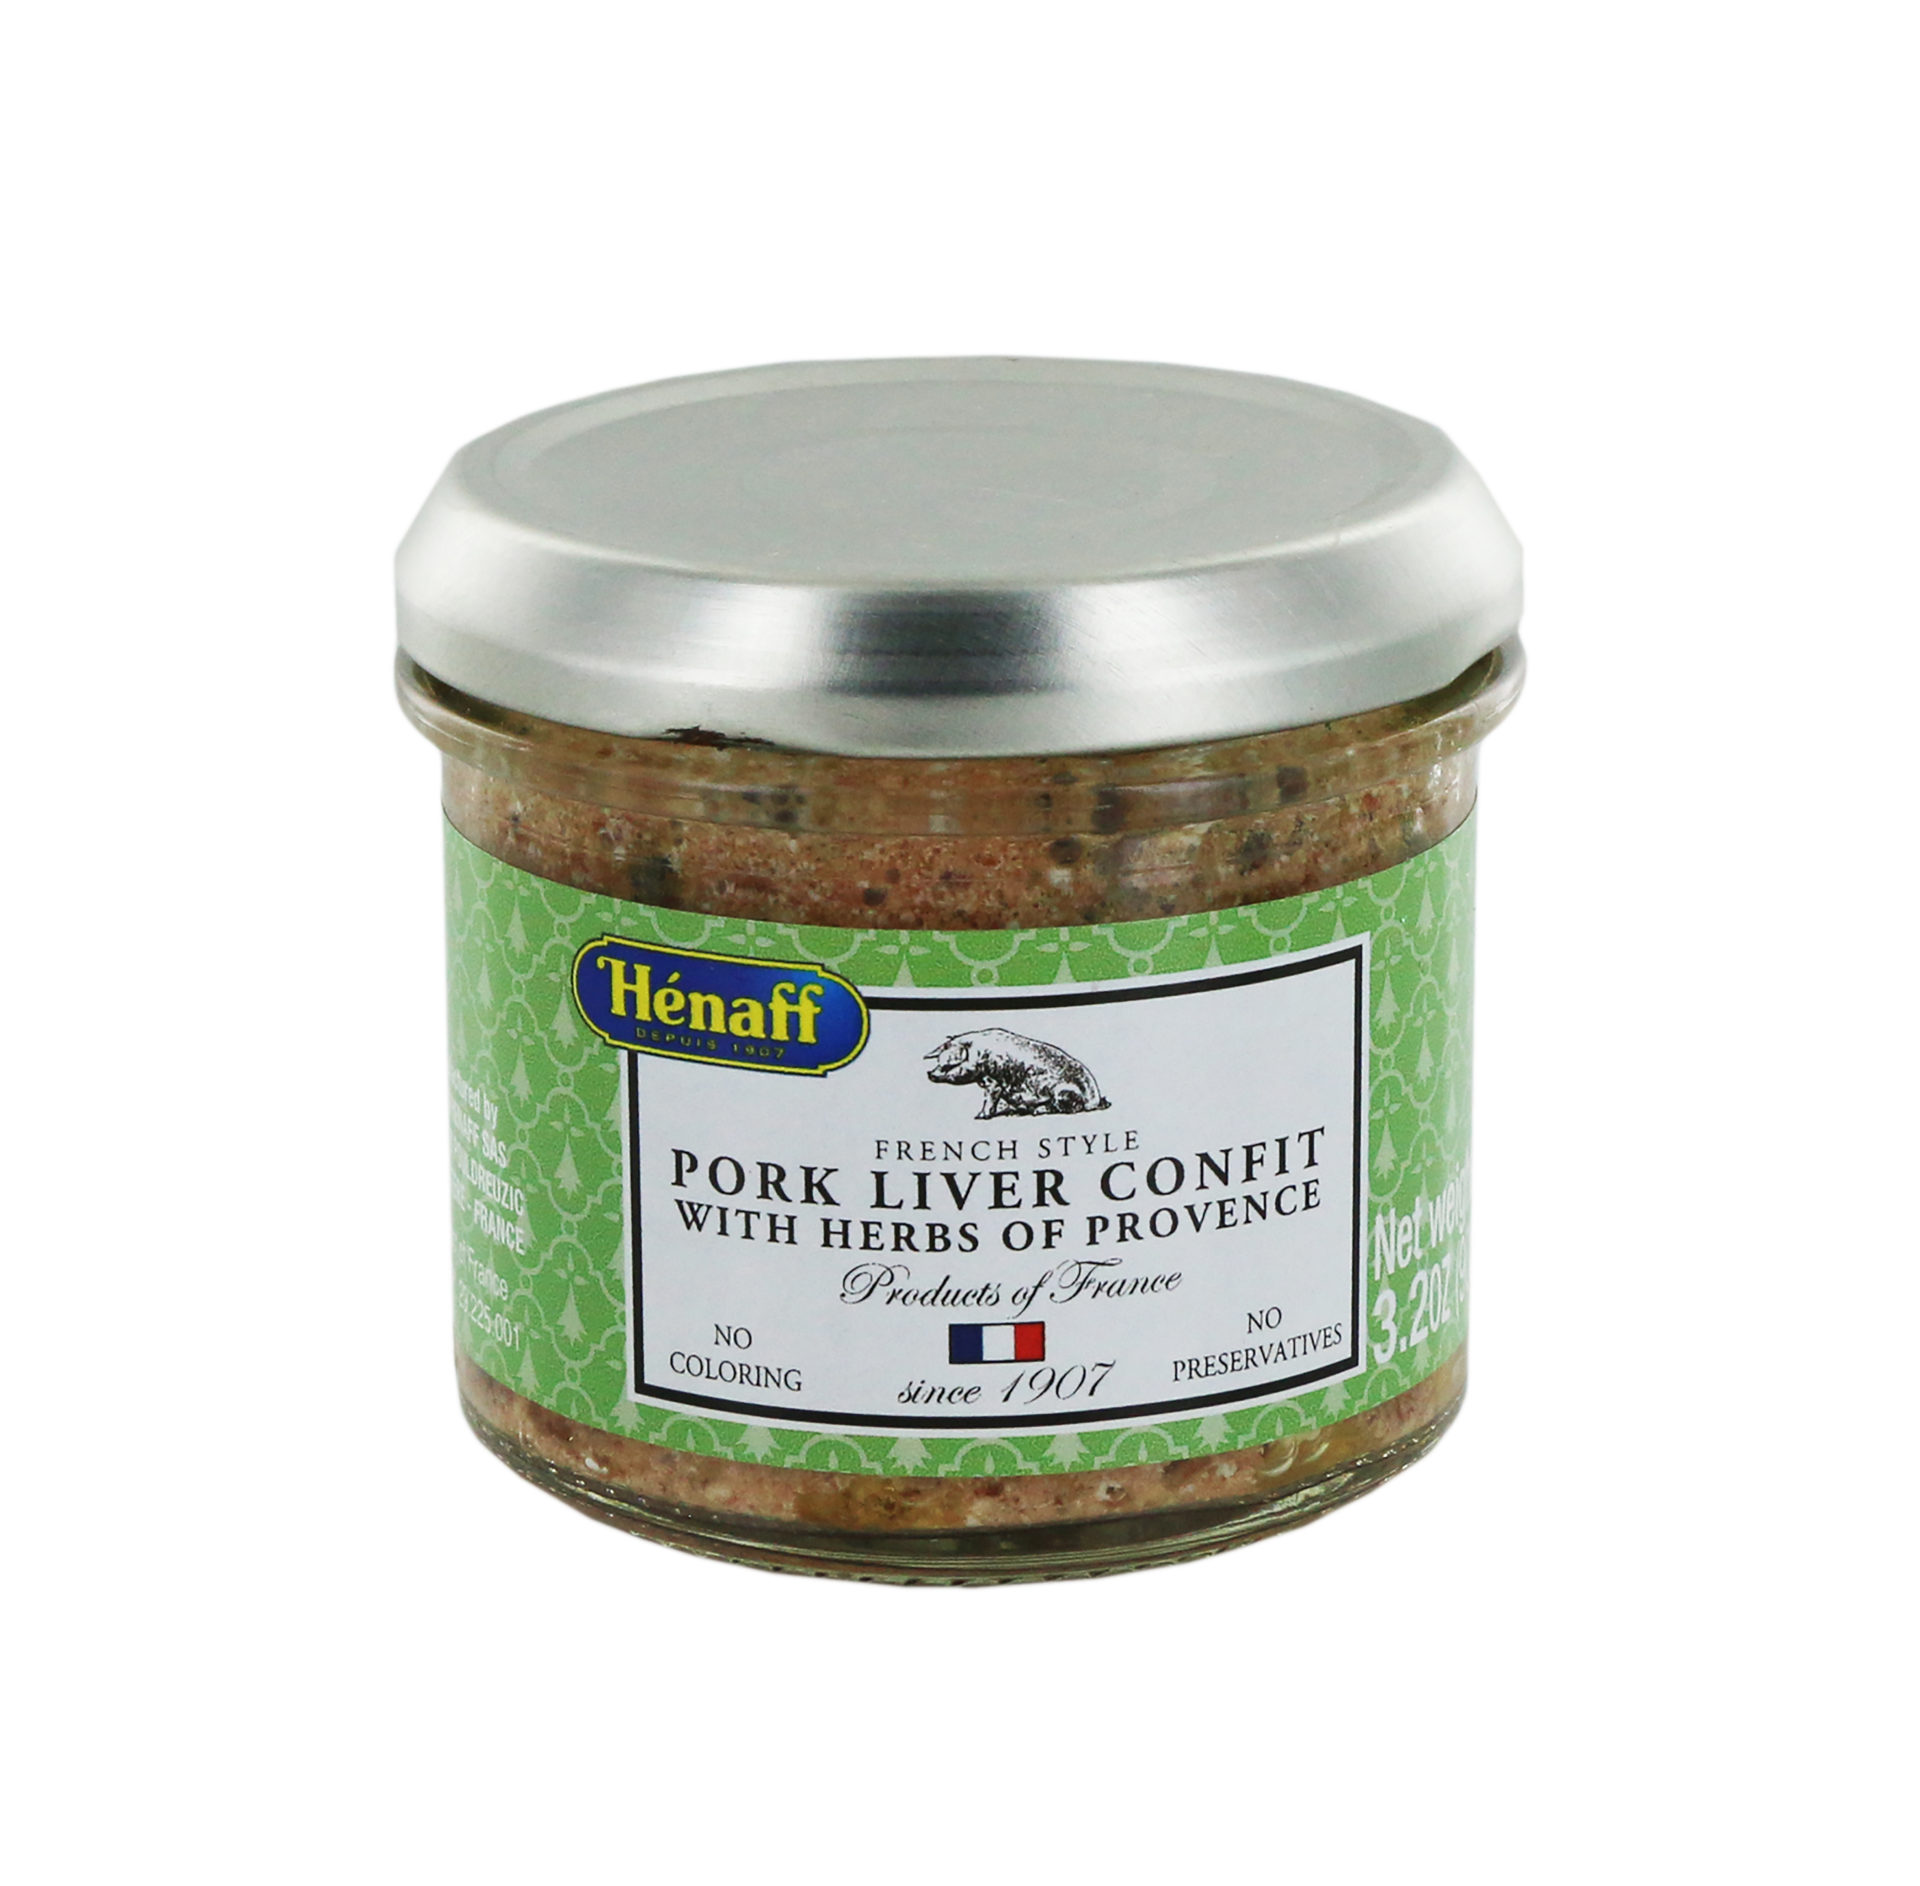 Pork liver Confit with Herbs of Provence